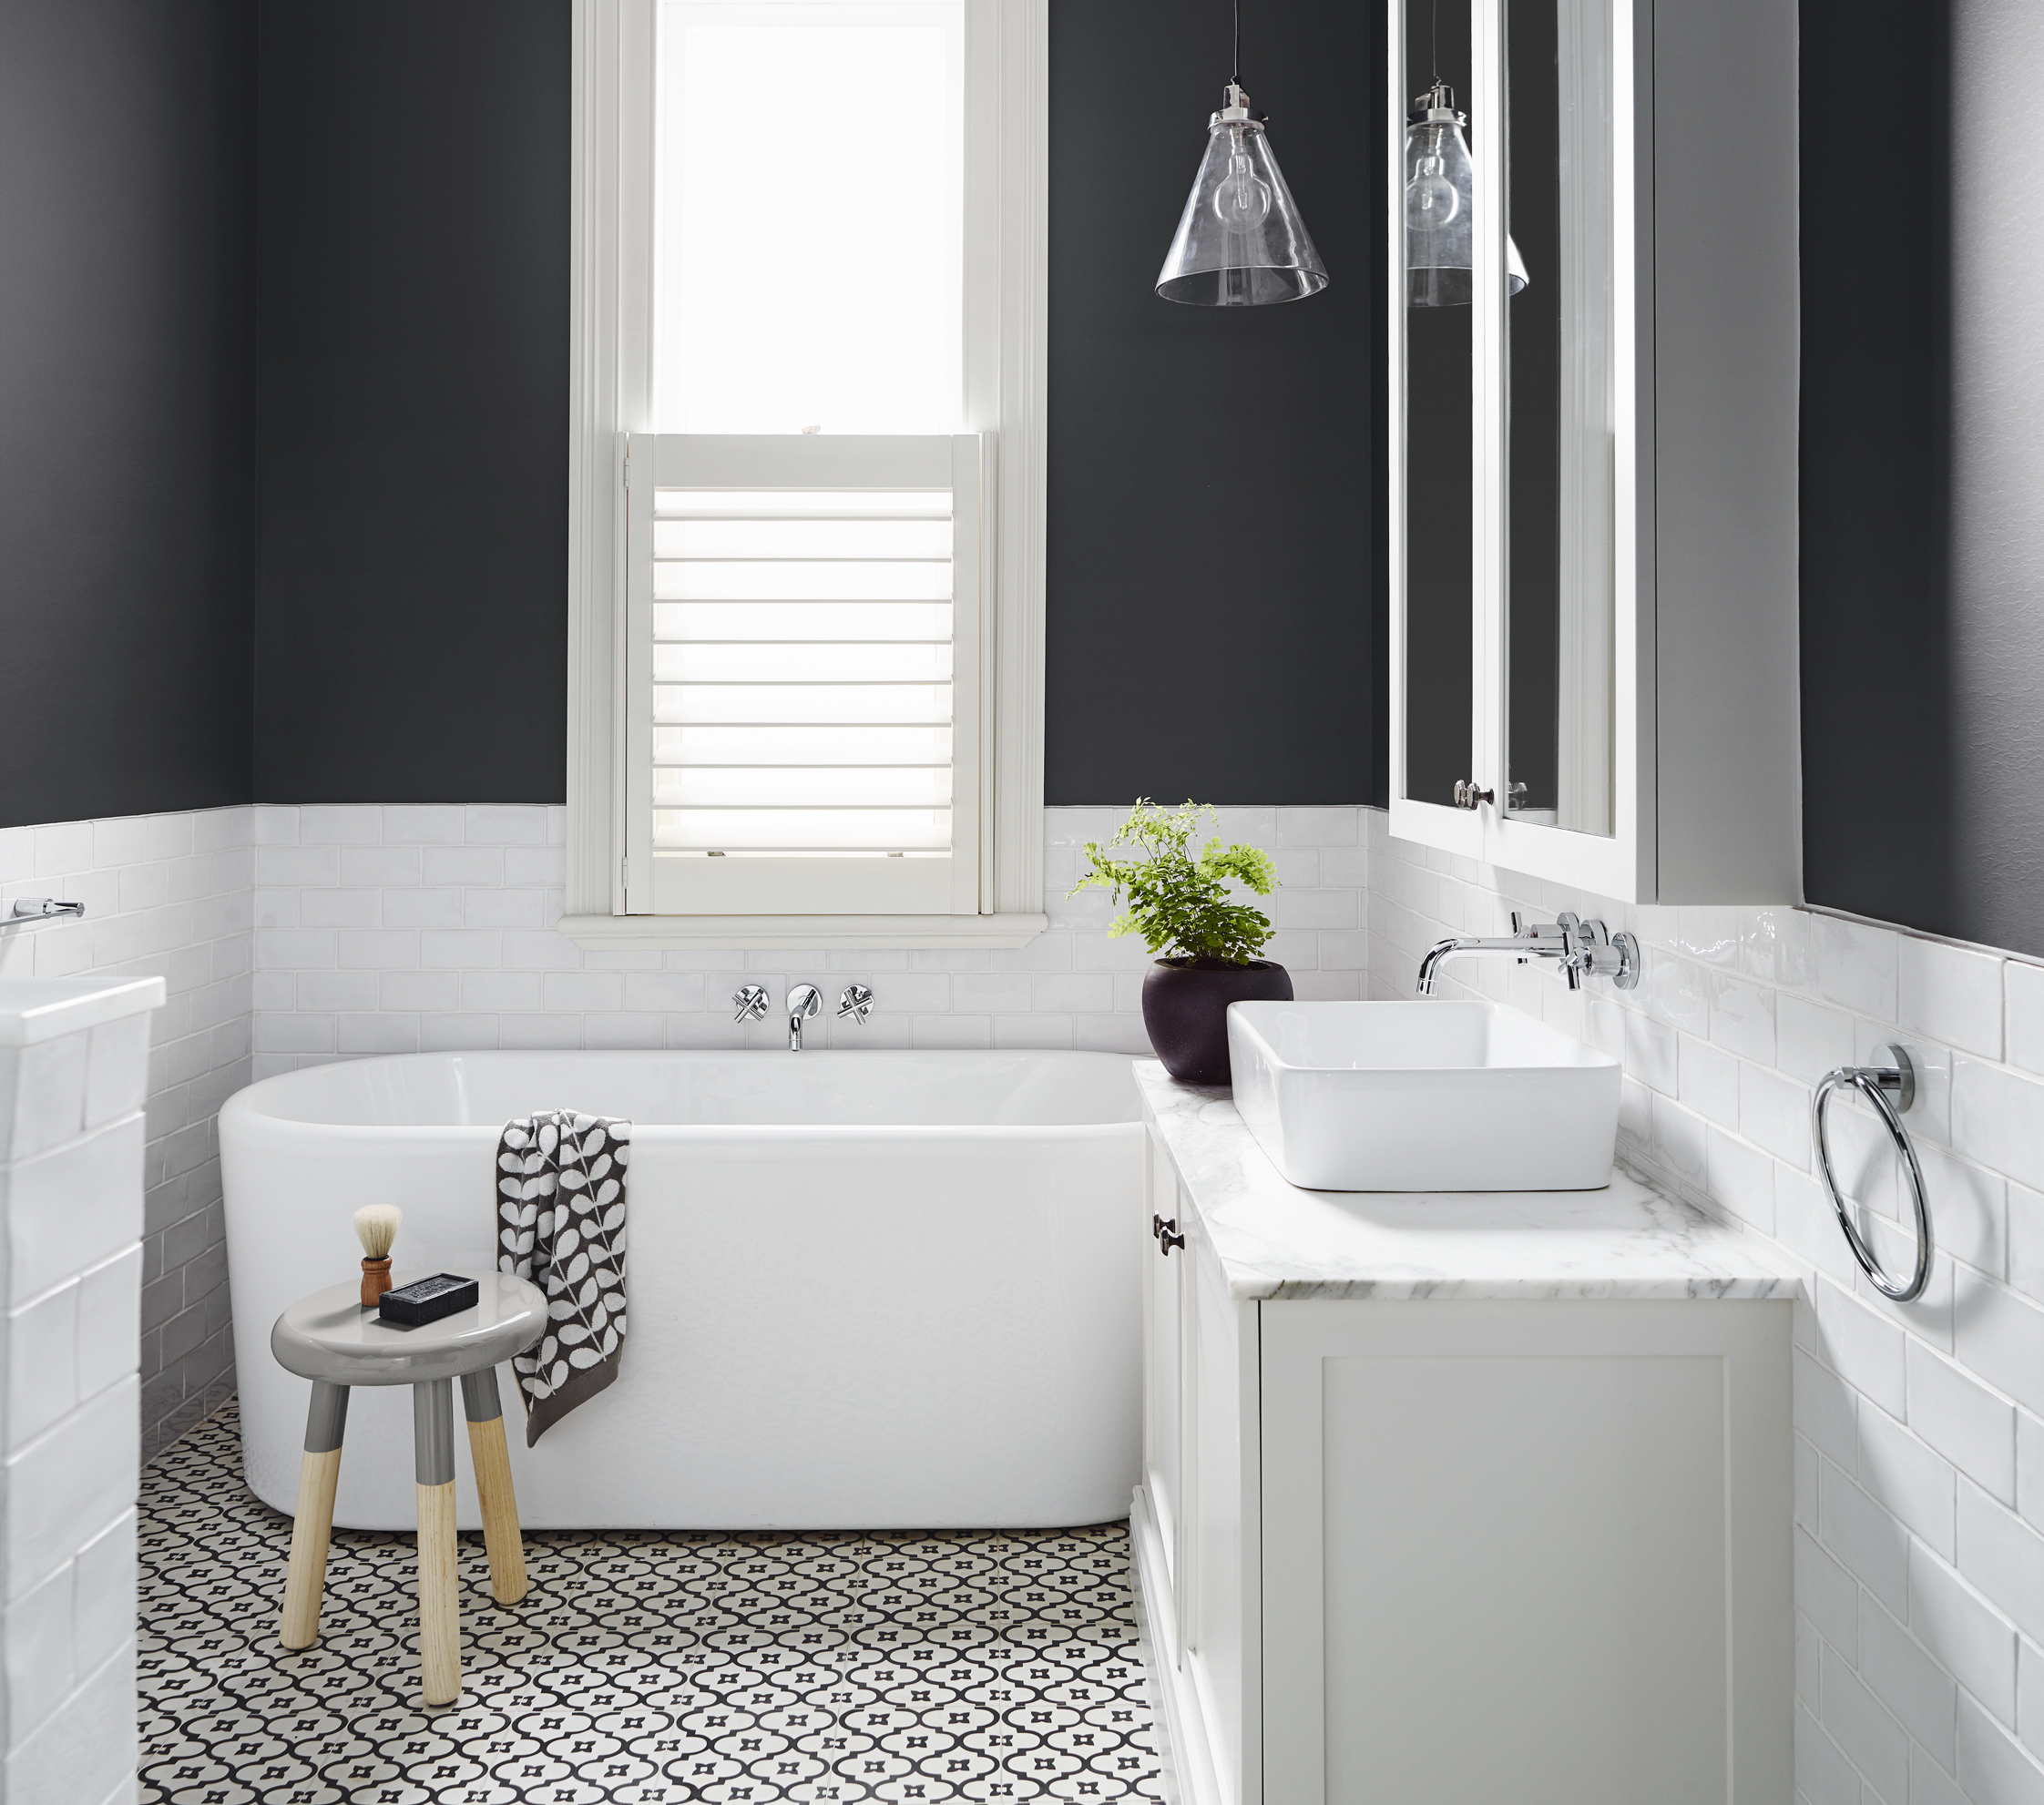 DULUX WilliamstownBathroom